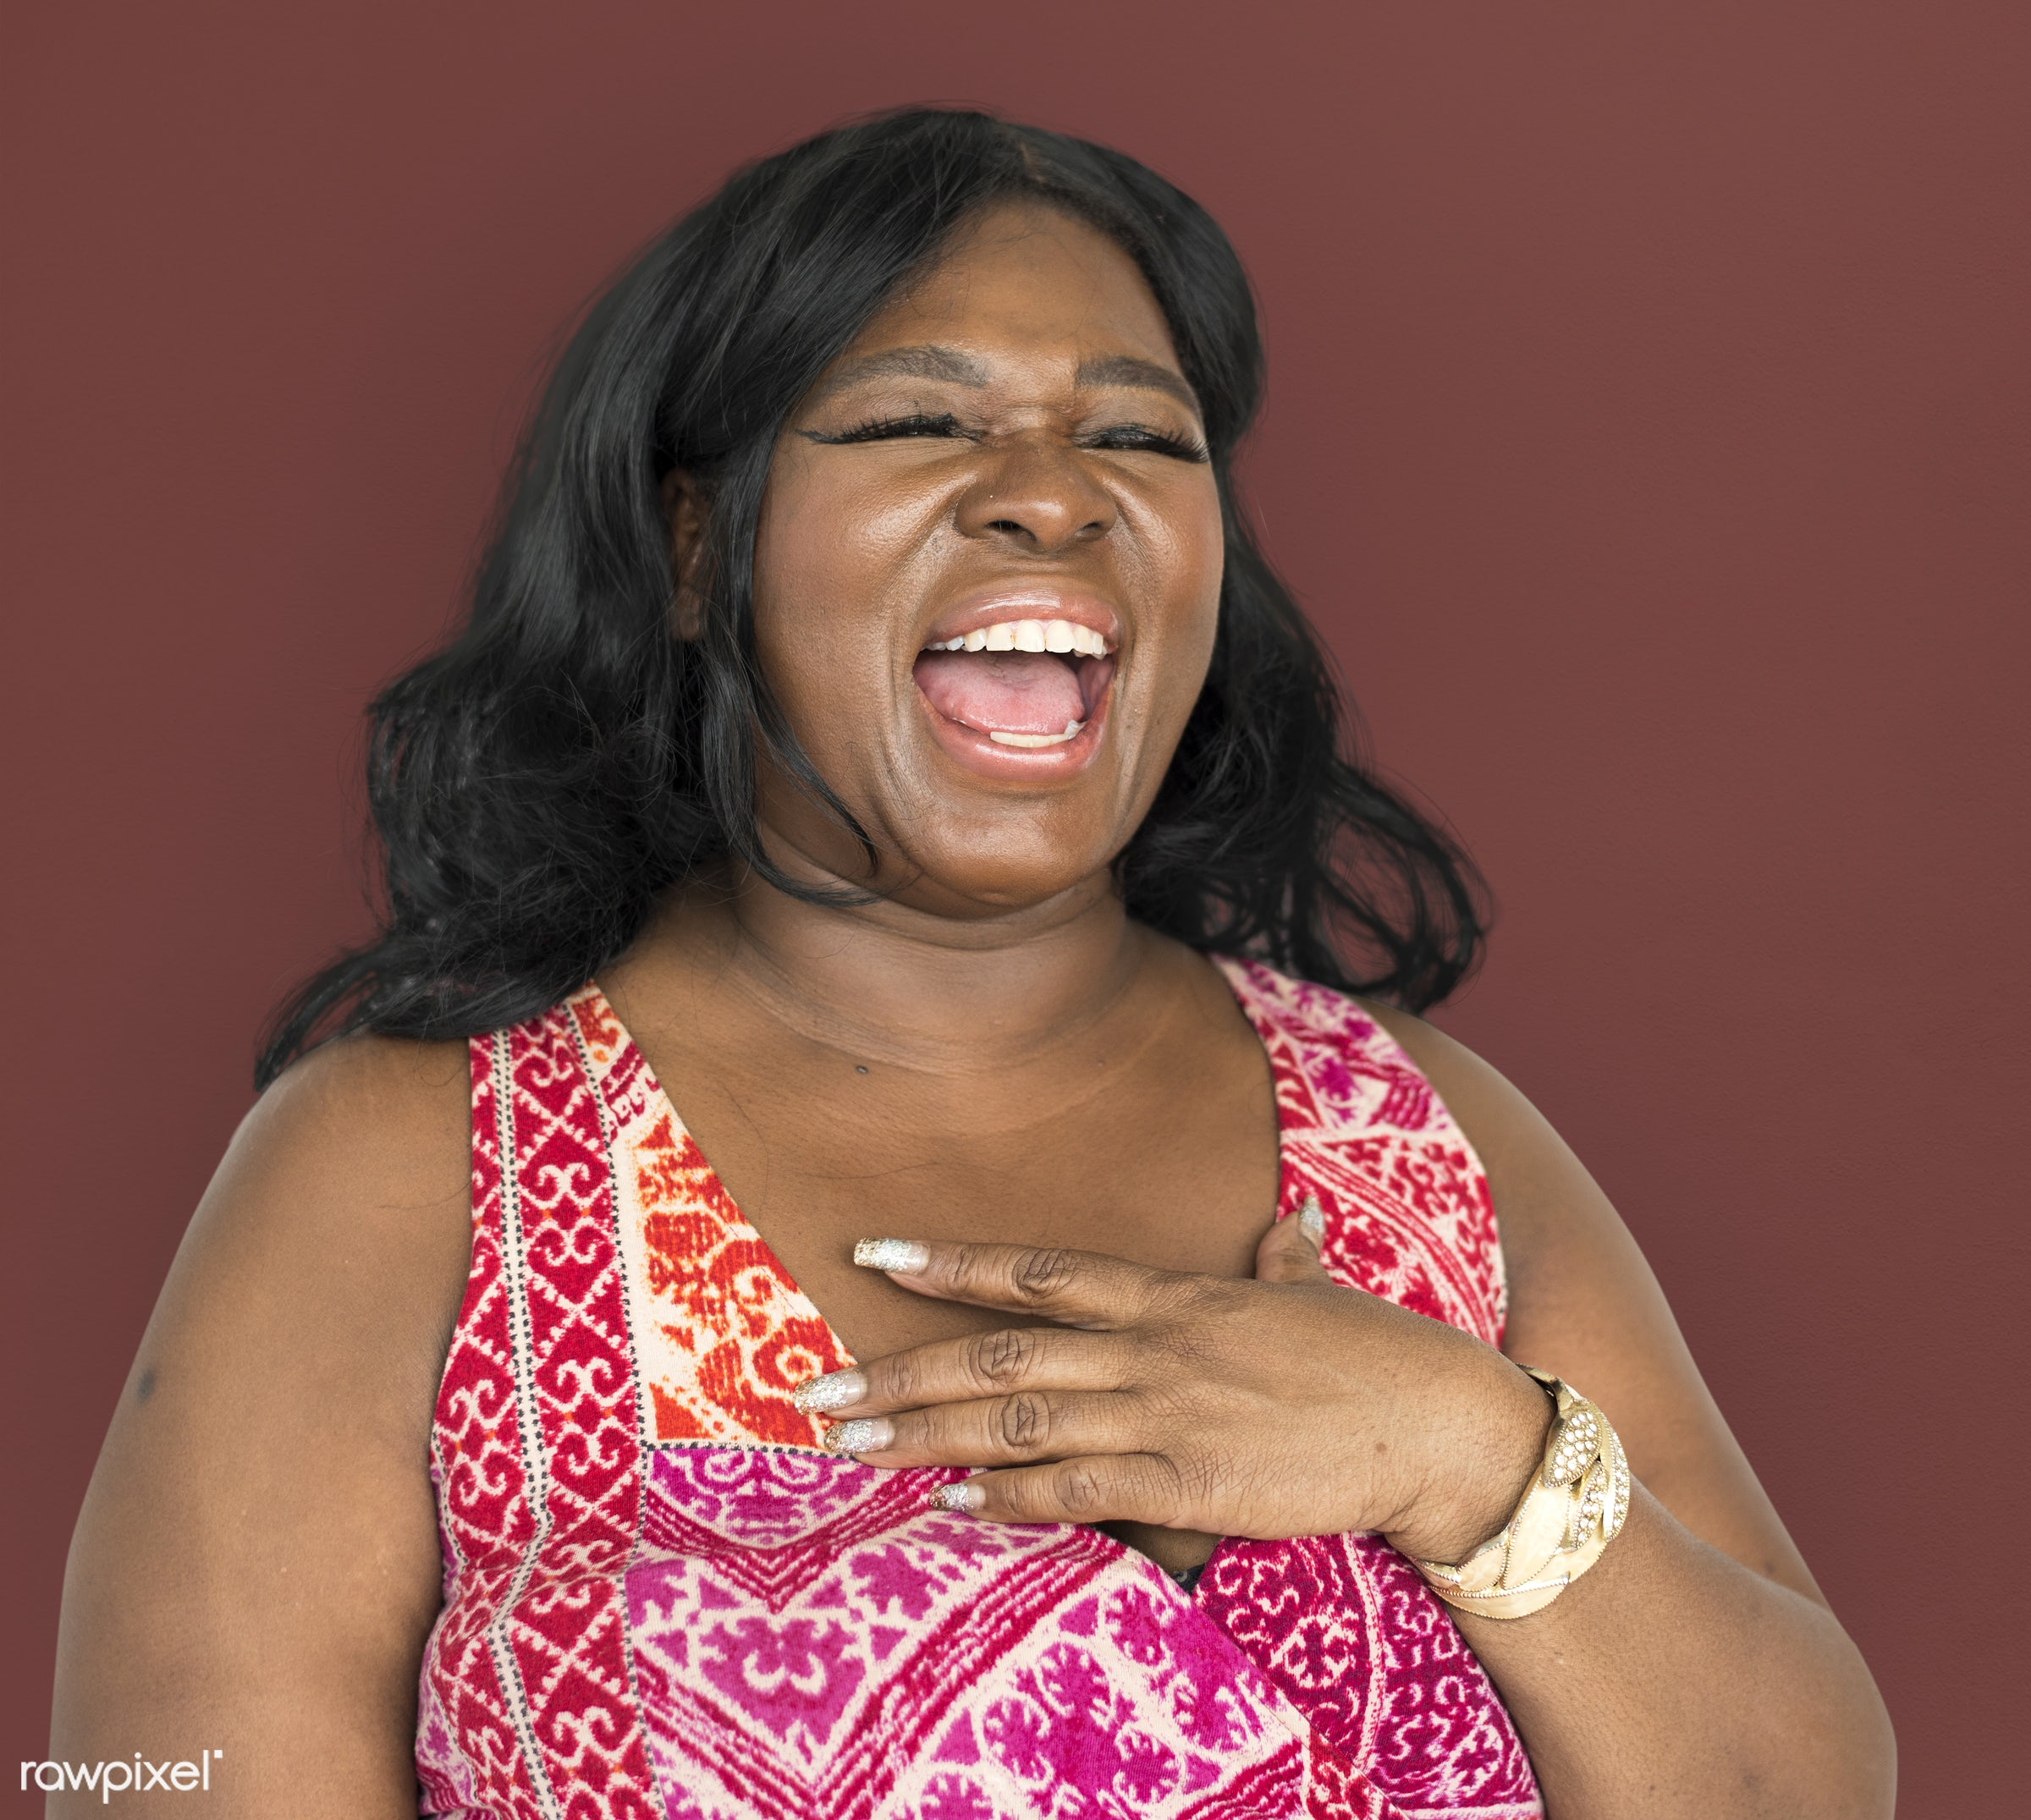 studio, expression, person, joy, people, girl, joyous, woman, happy, smile, positive, cheerful, smiling, black, isolated,...